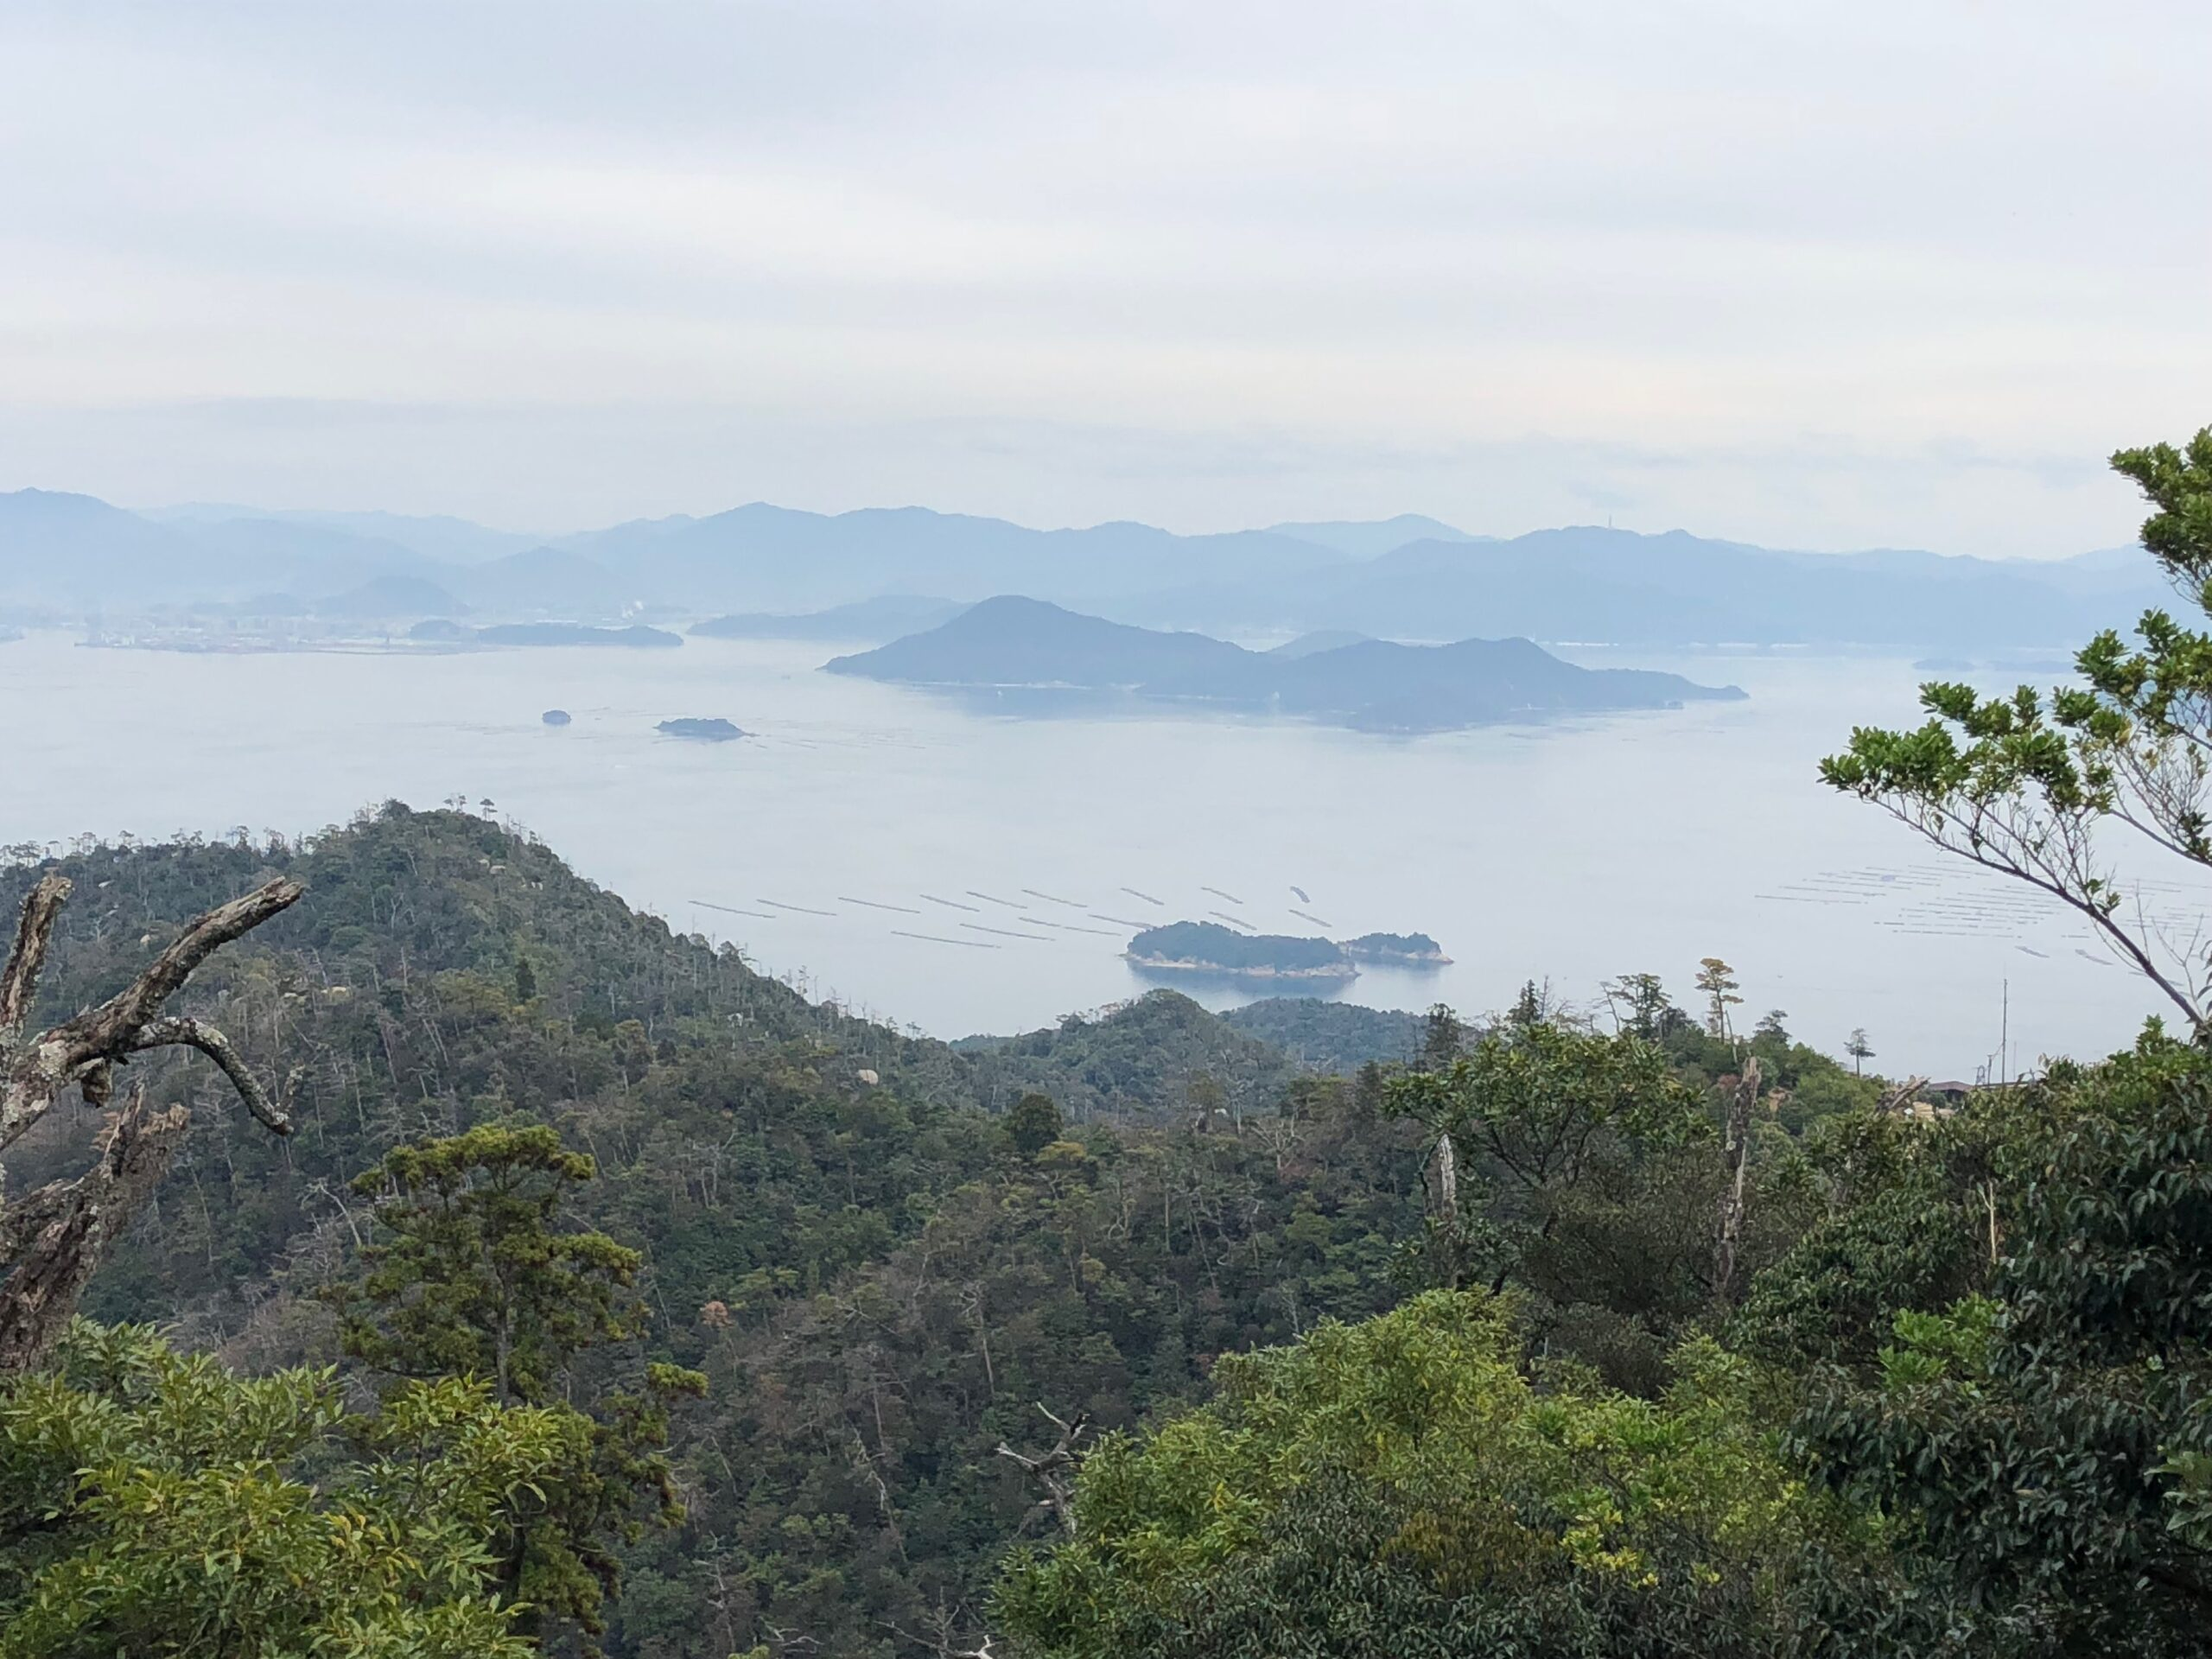 View from Mt. Misen